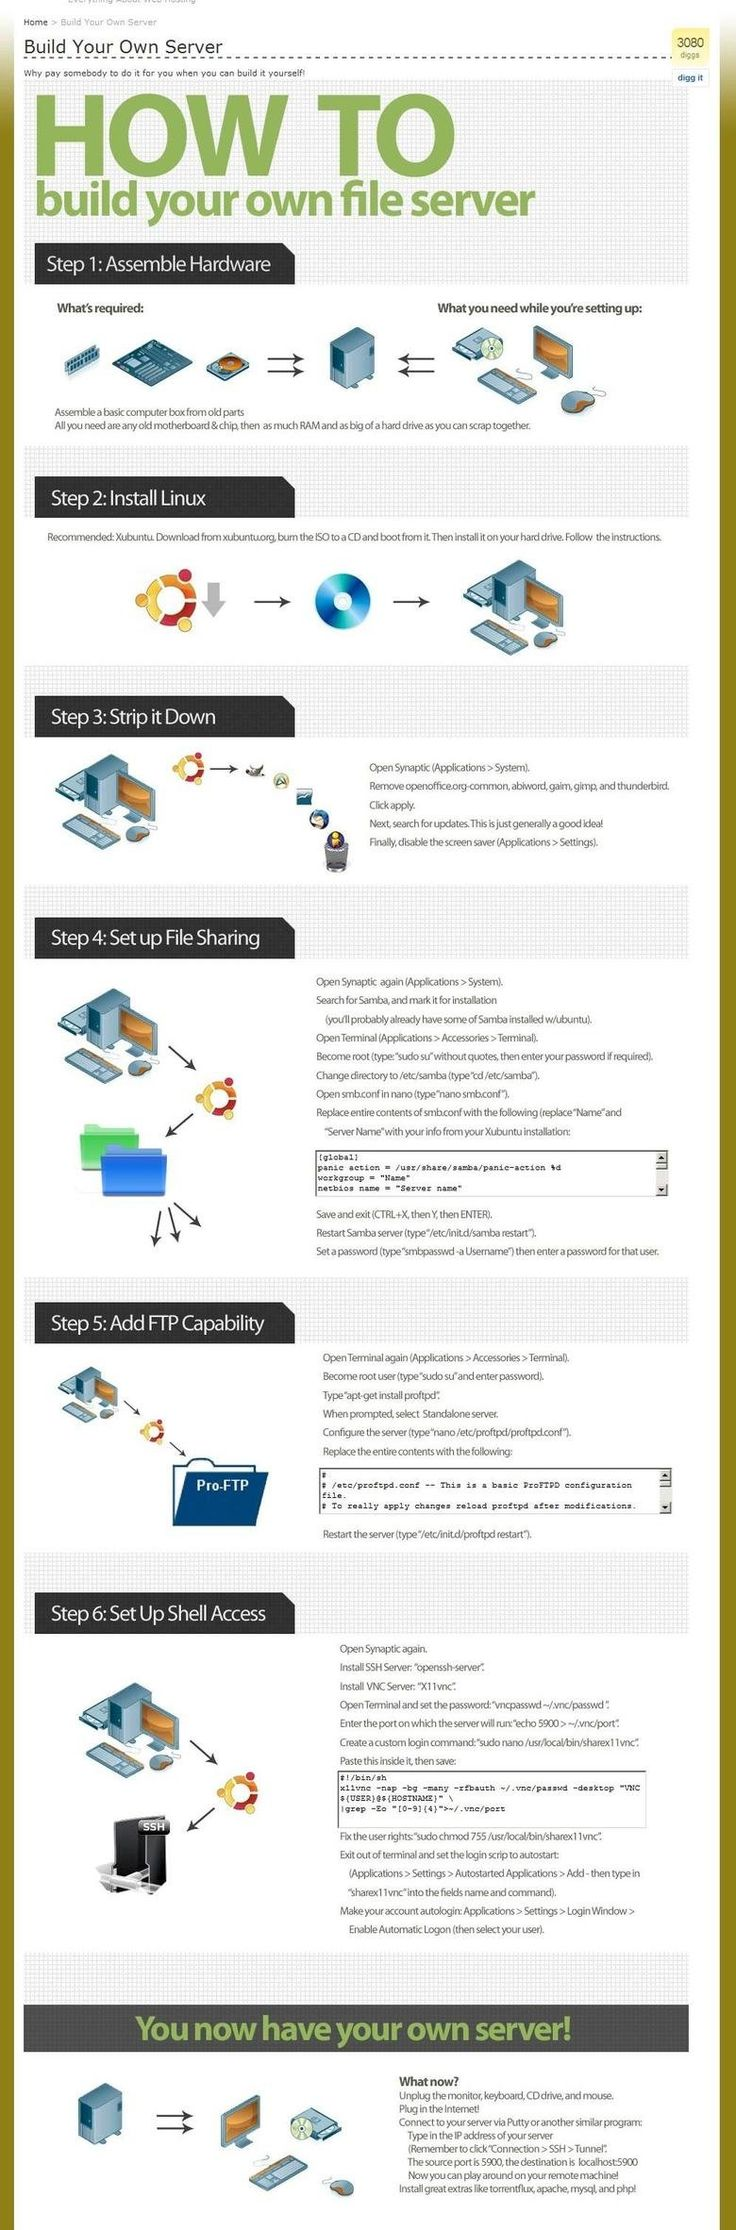 How to build your own file server